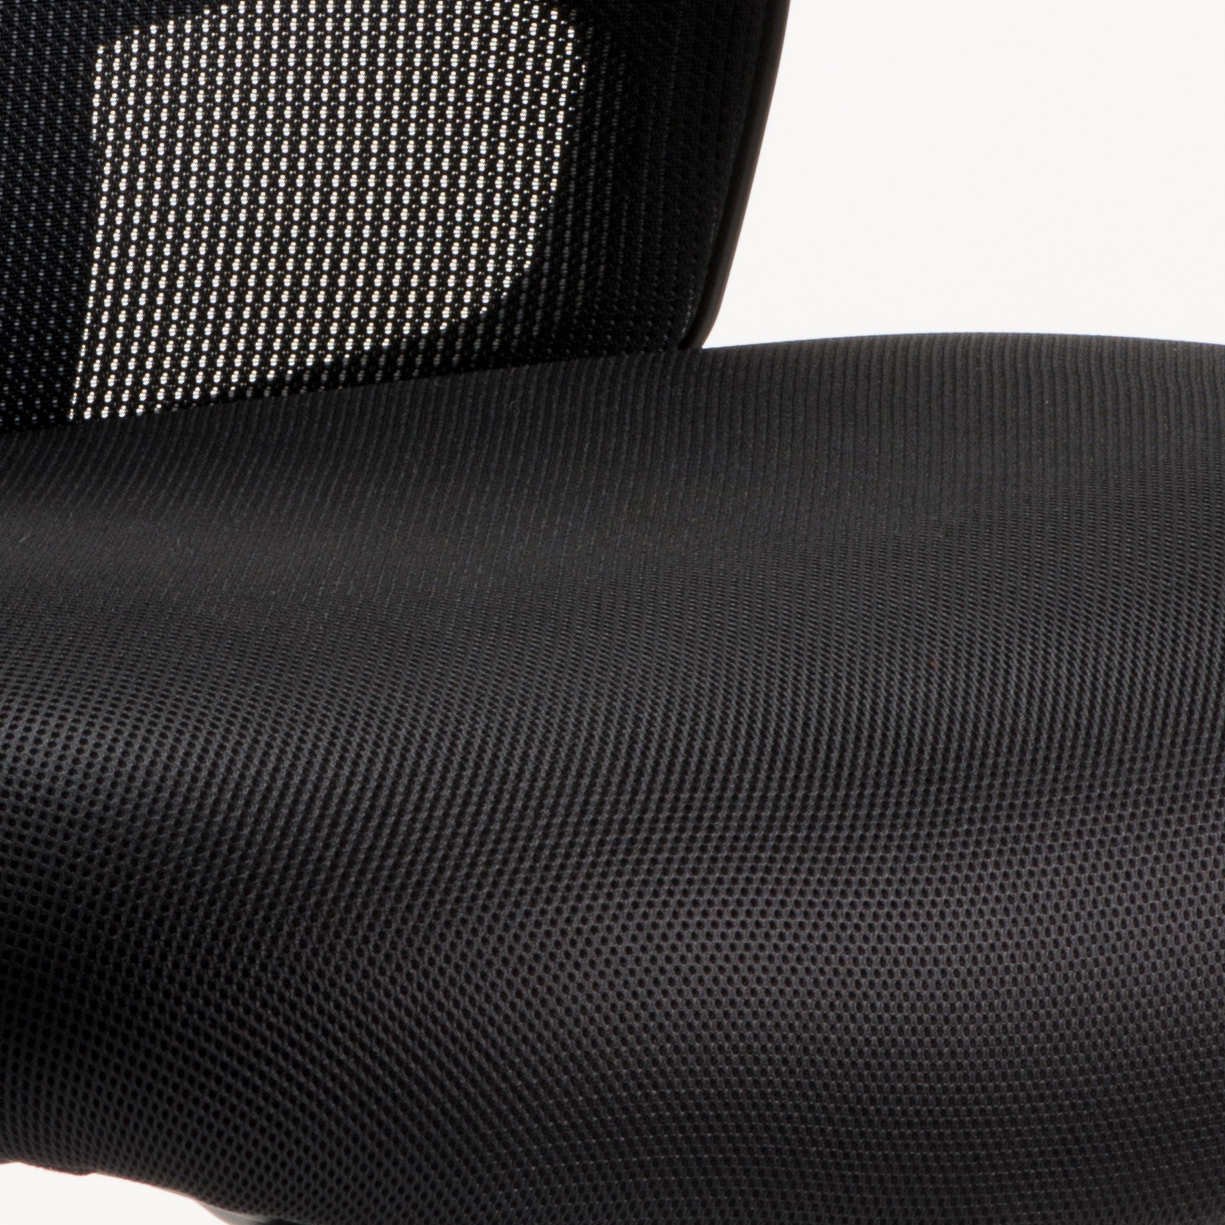 Sonix Portland Heavy Duty Mesh Chair Black 610x540x490-590mm Ref OP000106